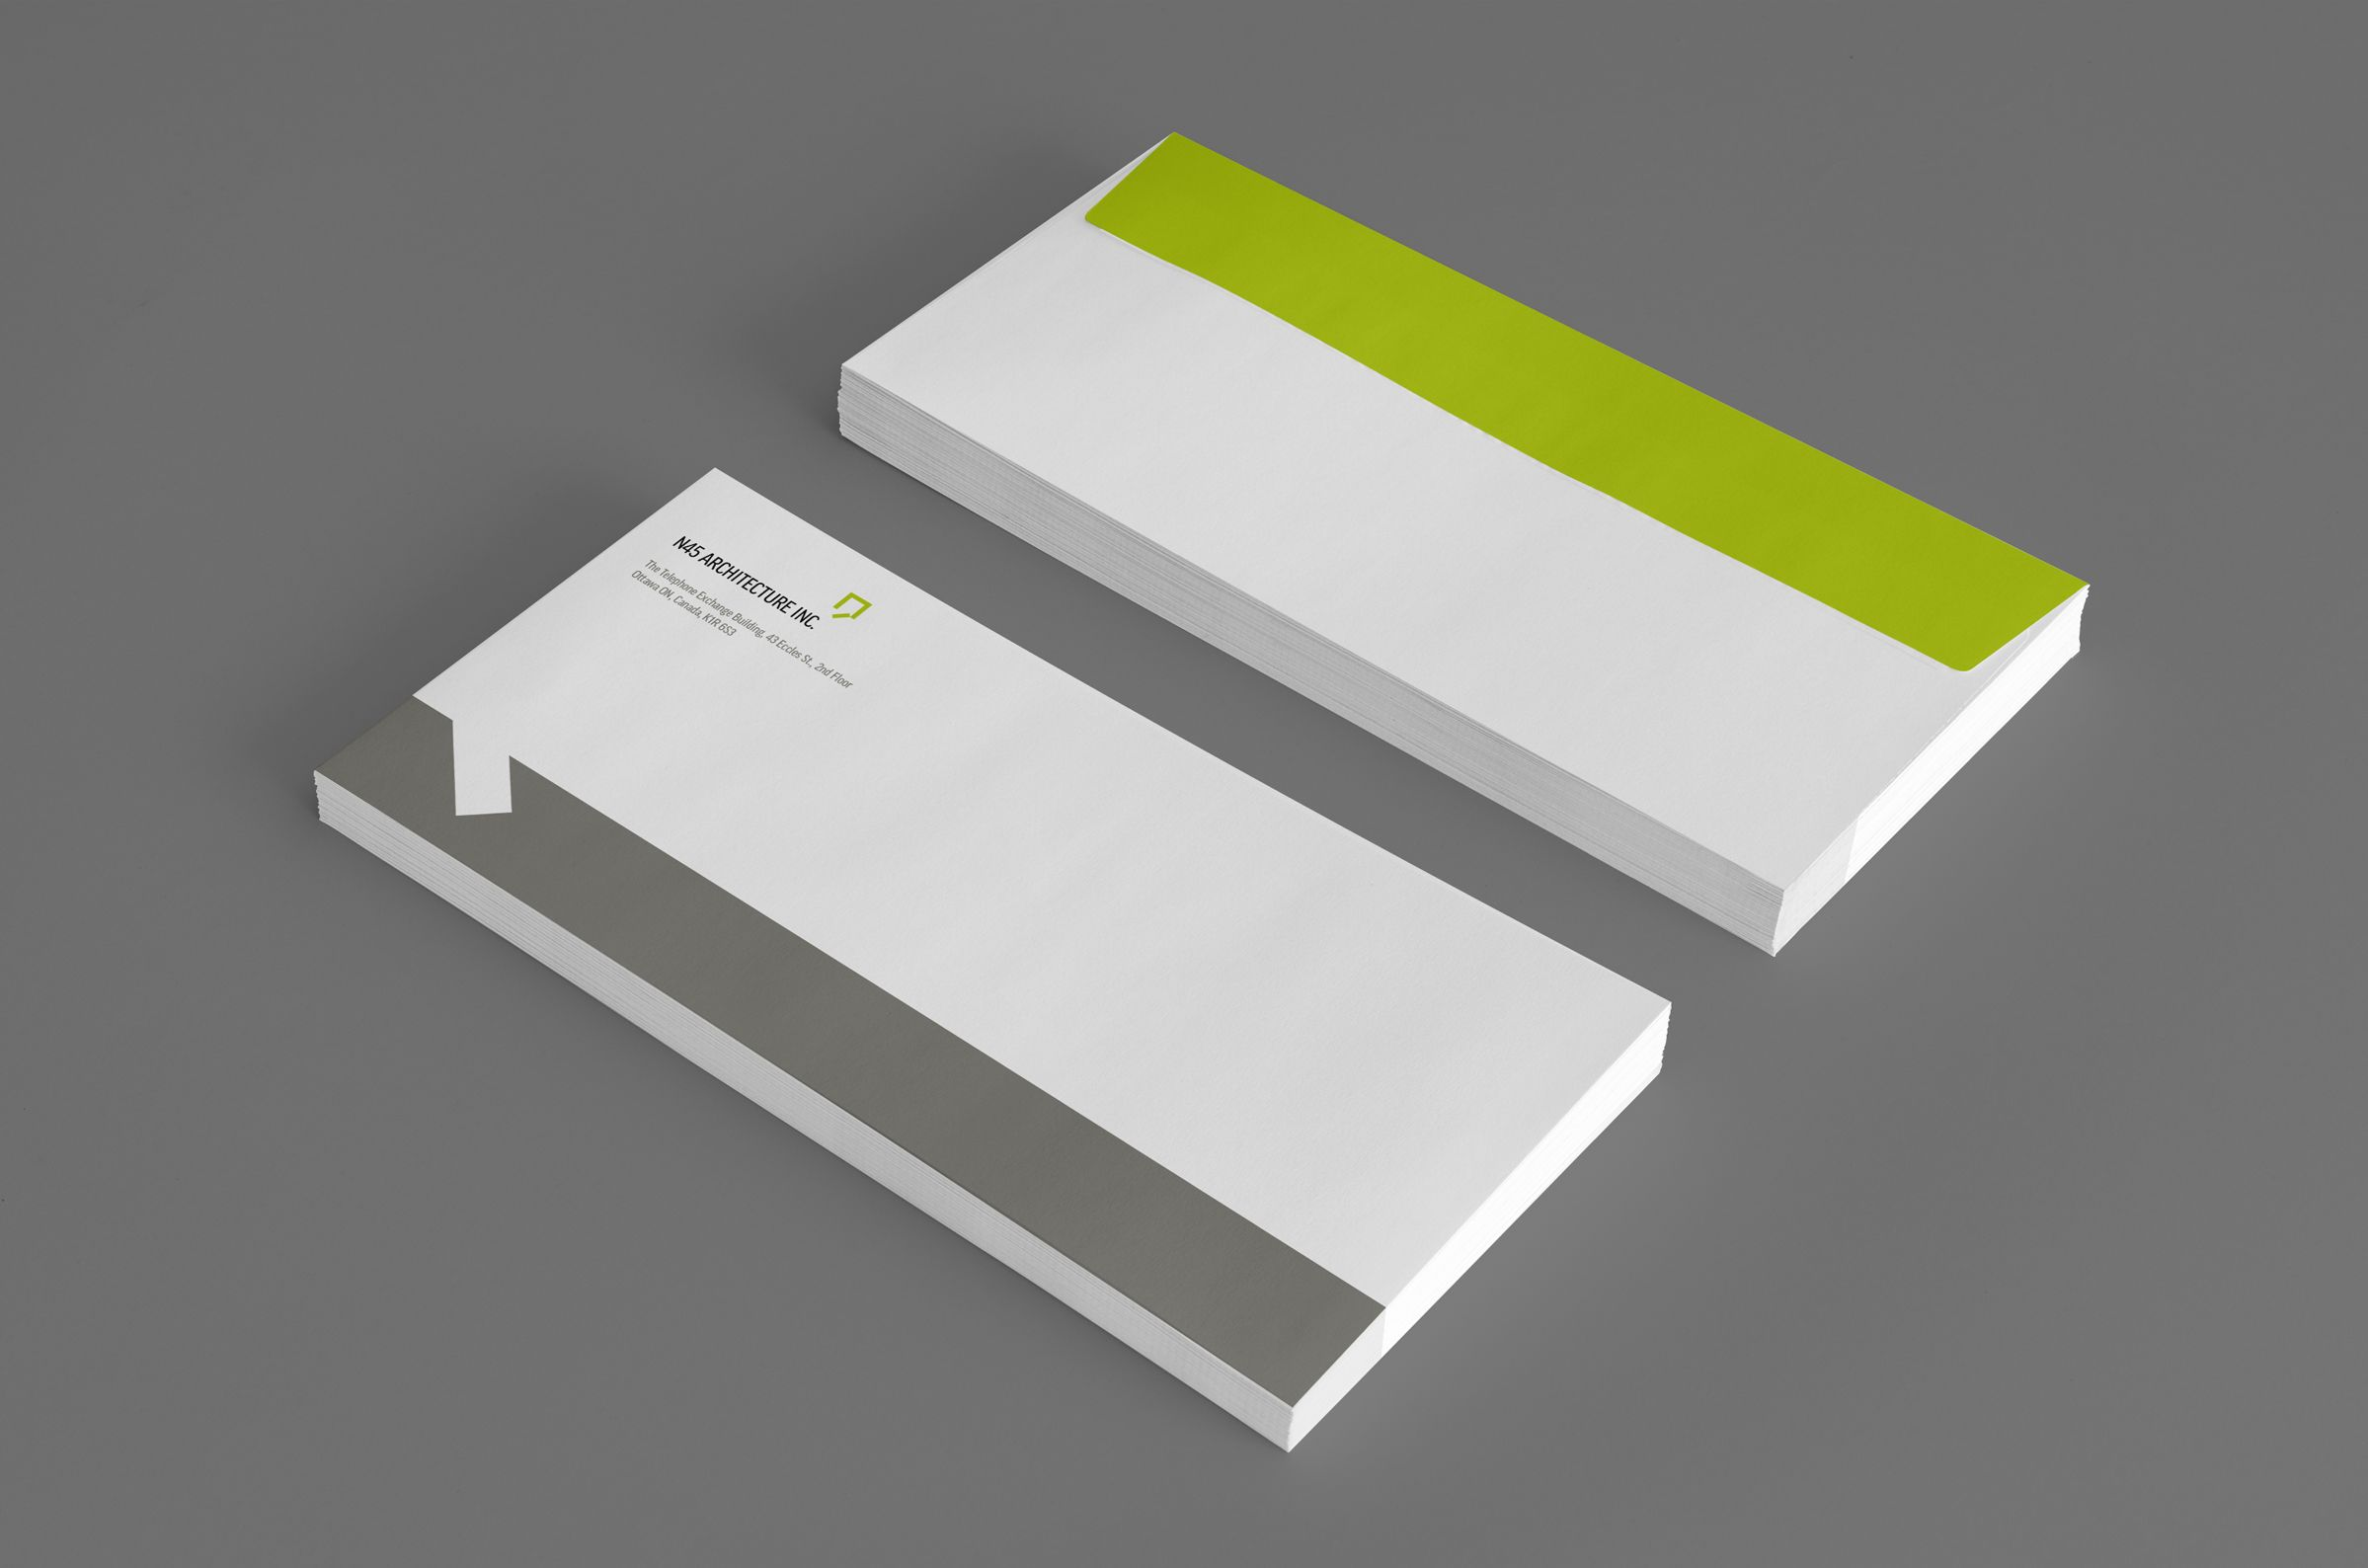 Envelope for N45 Architecture Inc., architects by Graphic Designer idApostle